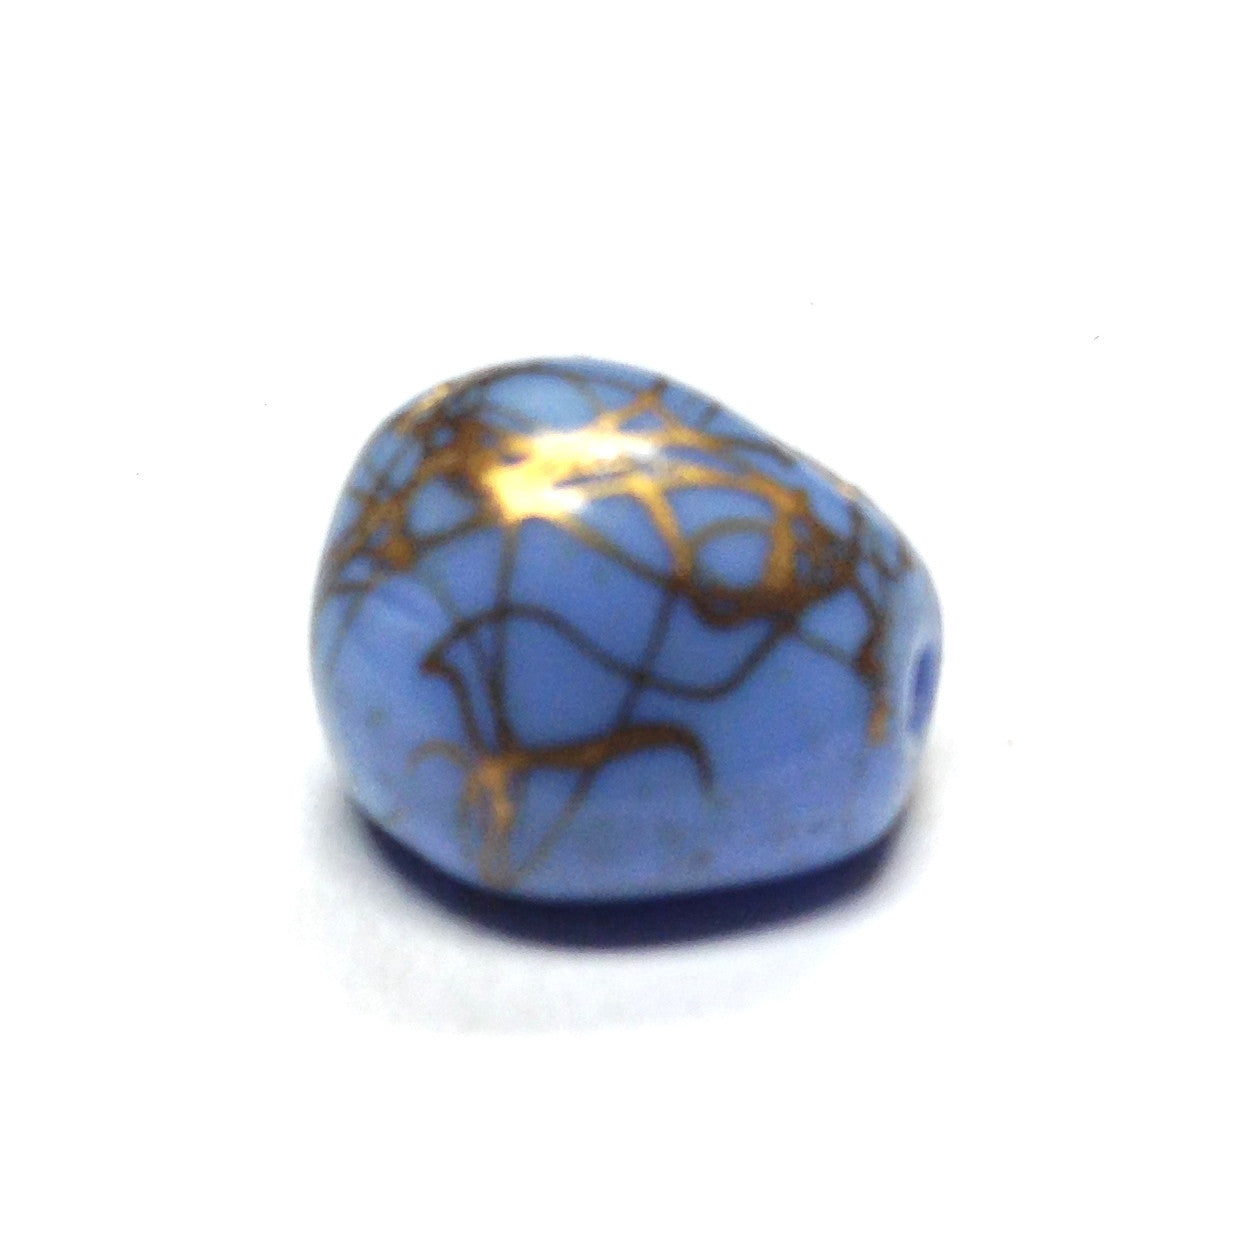 13X12MM Blue/Gold Fancy Glass Bead (36 pieces)